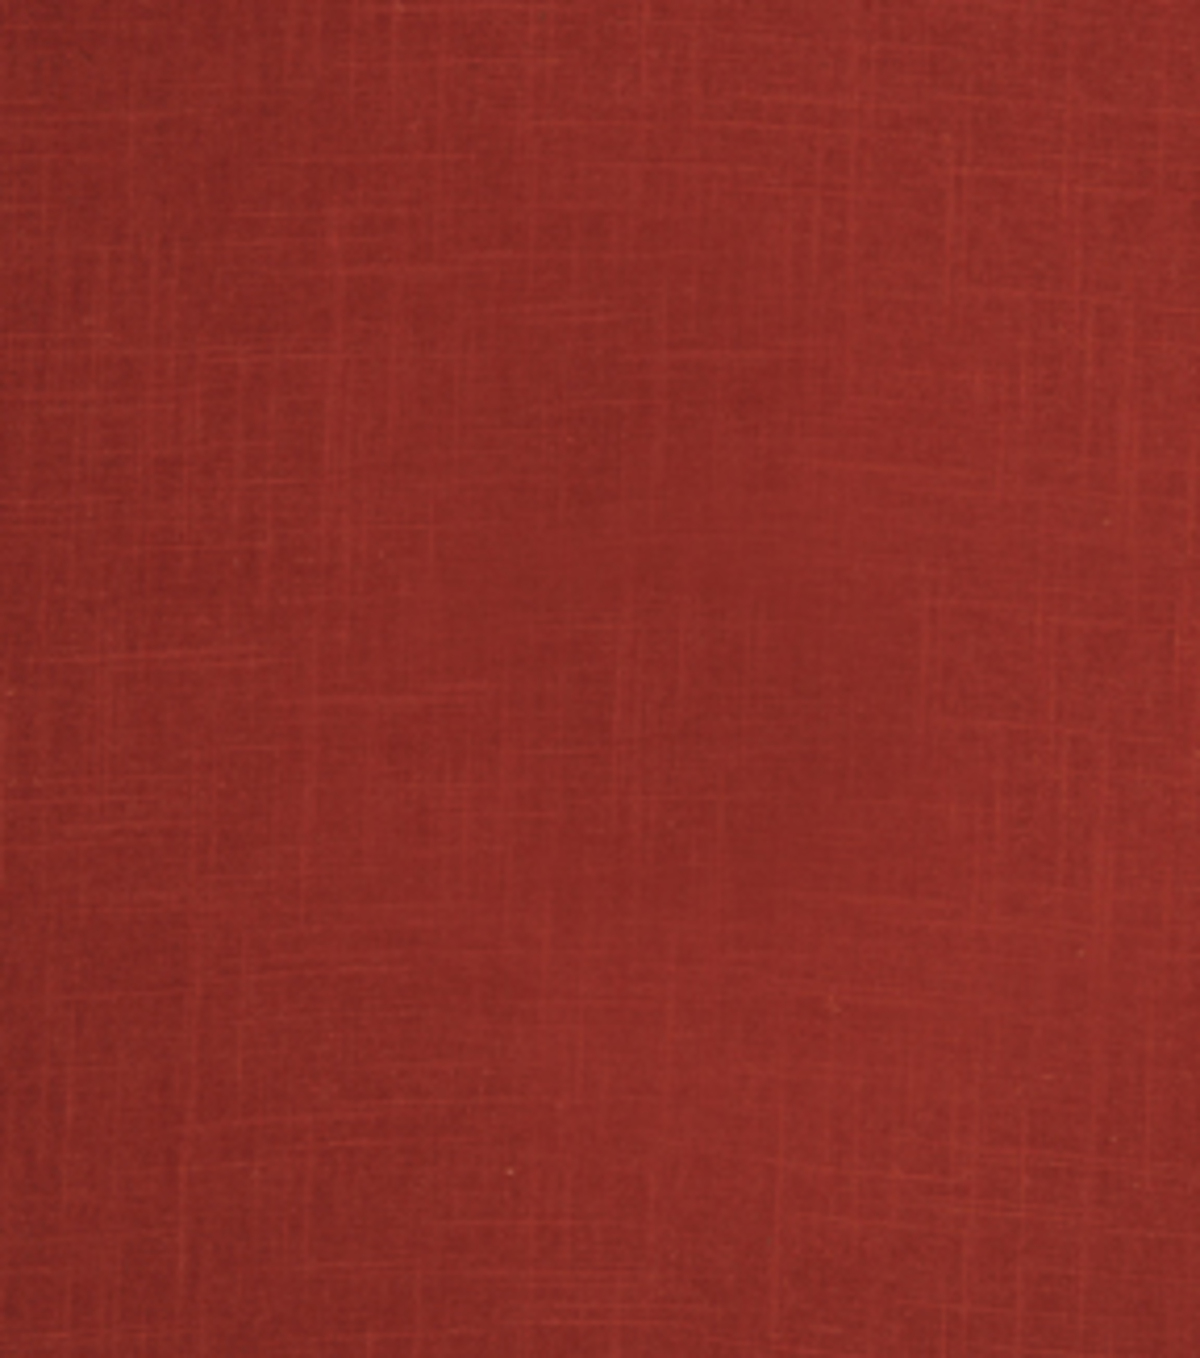 Home Decor 8\u0022x8\u0022 Fabric Swatch-SMC Designs Ohio Cherry